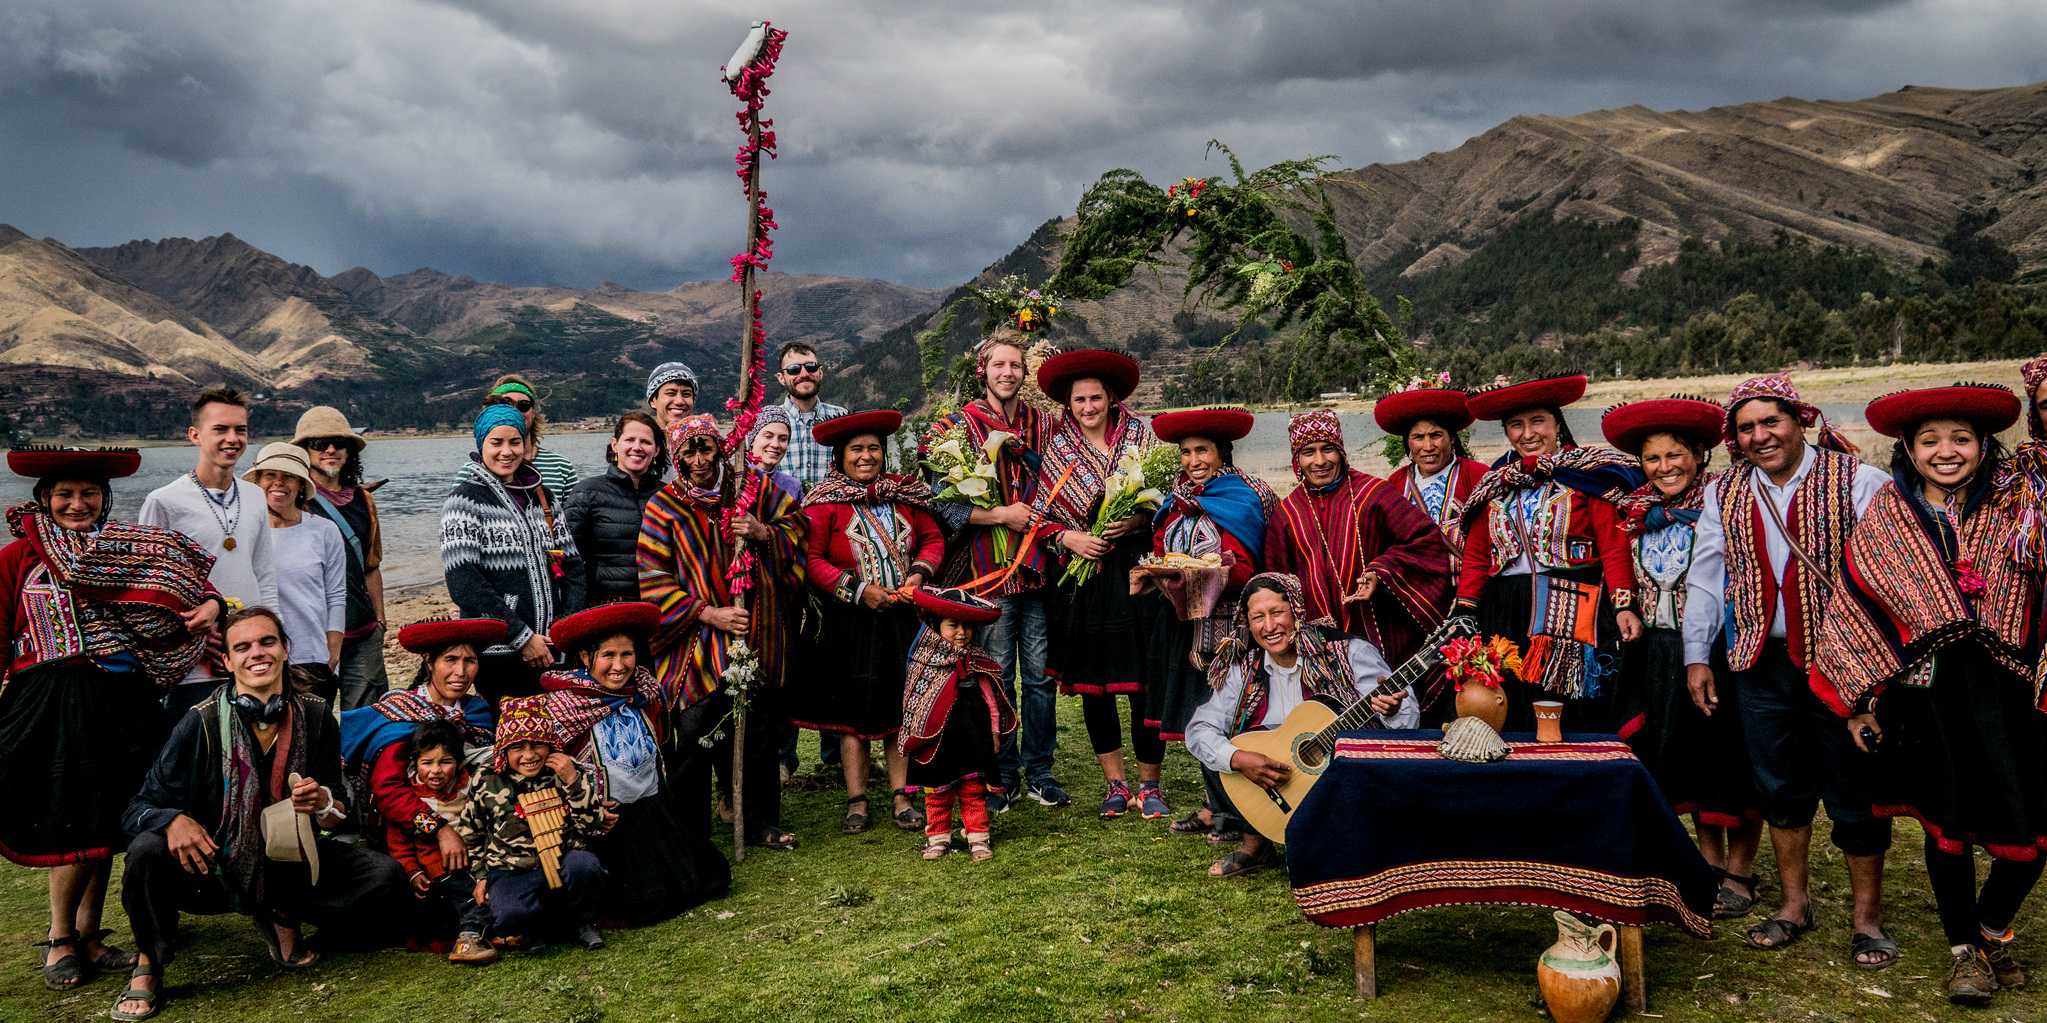 While taking part in gap year travel, GVI participants in Cusco take part in a traditional wedding.